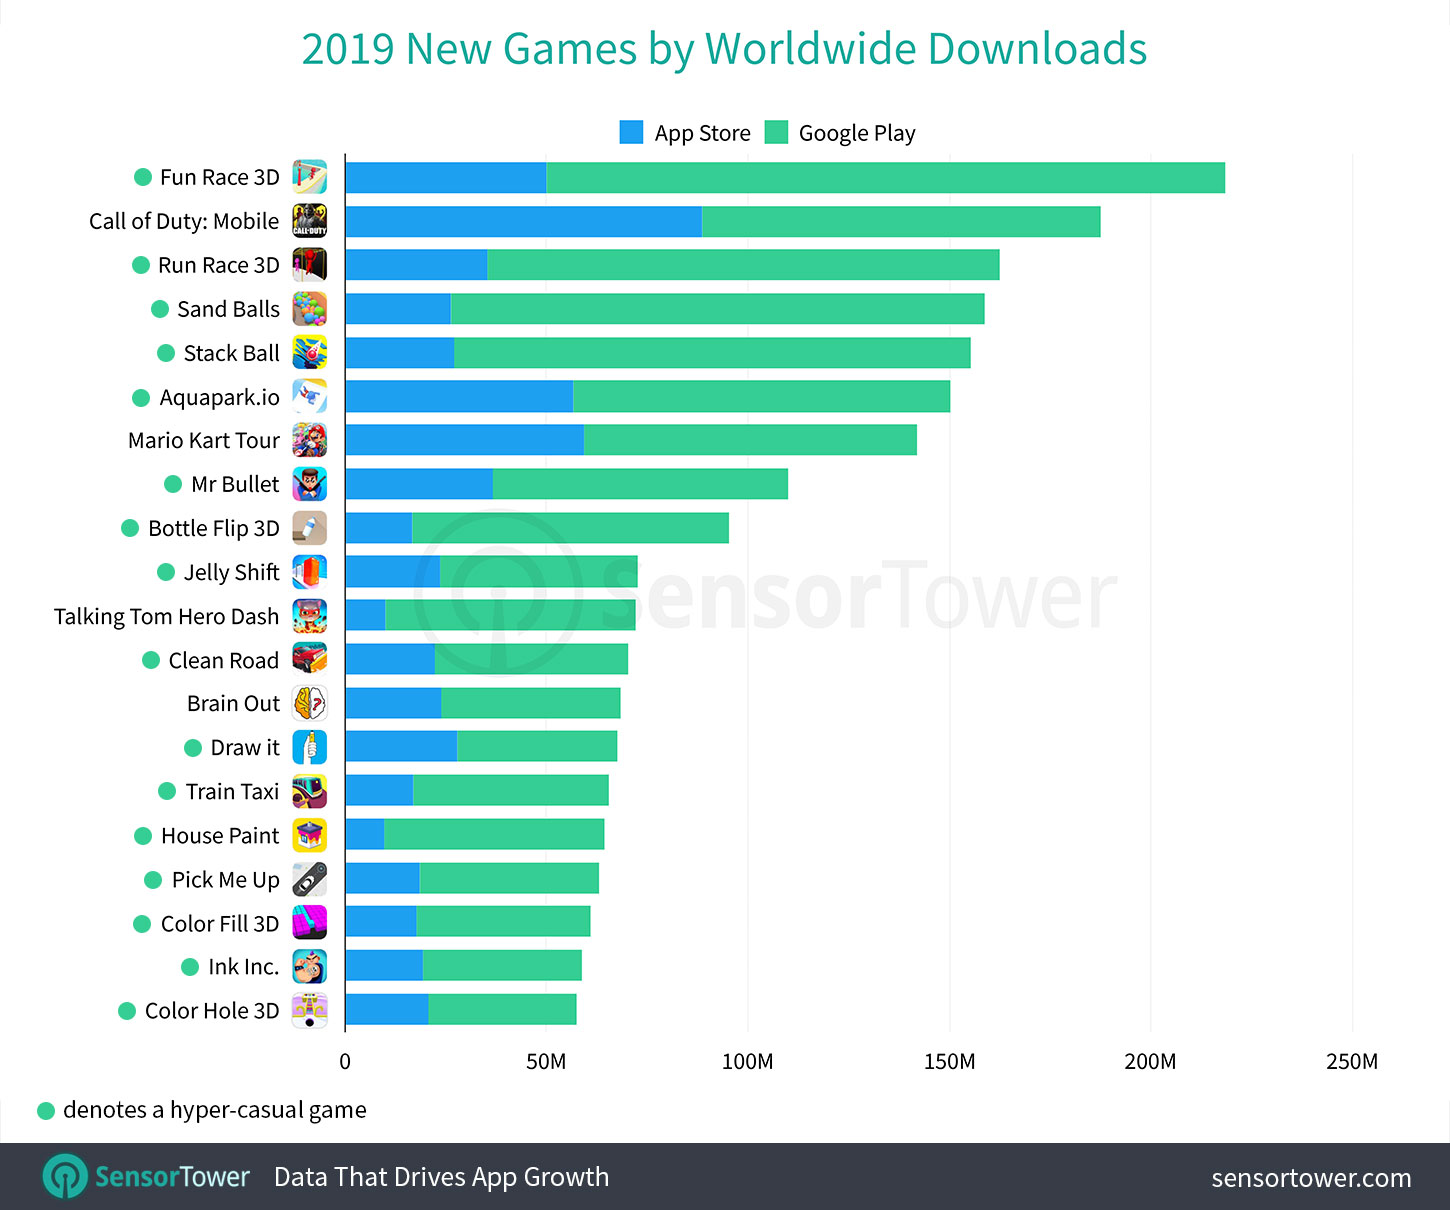 2019's Top New Games by Worldwide Downloads